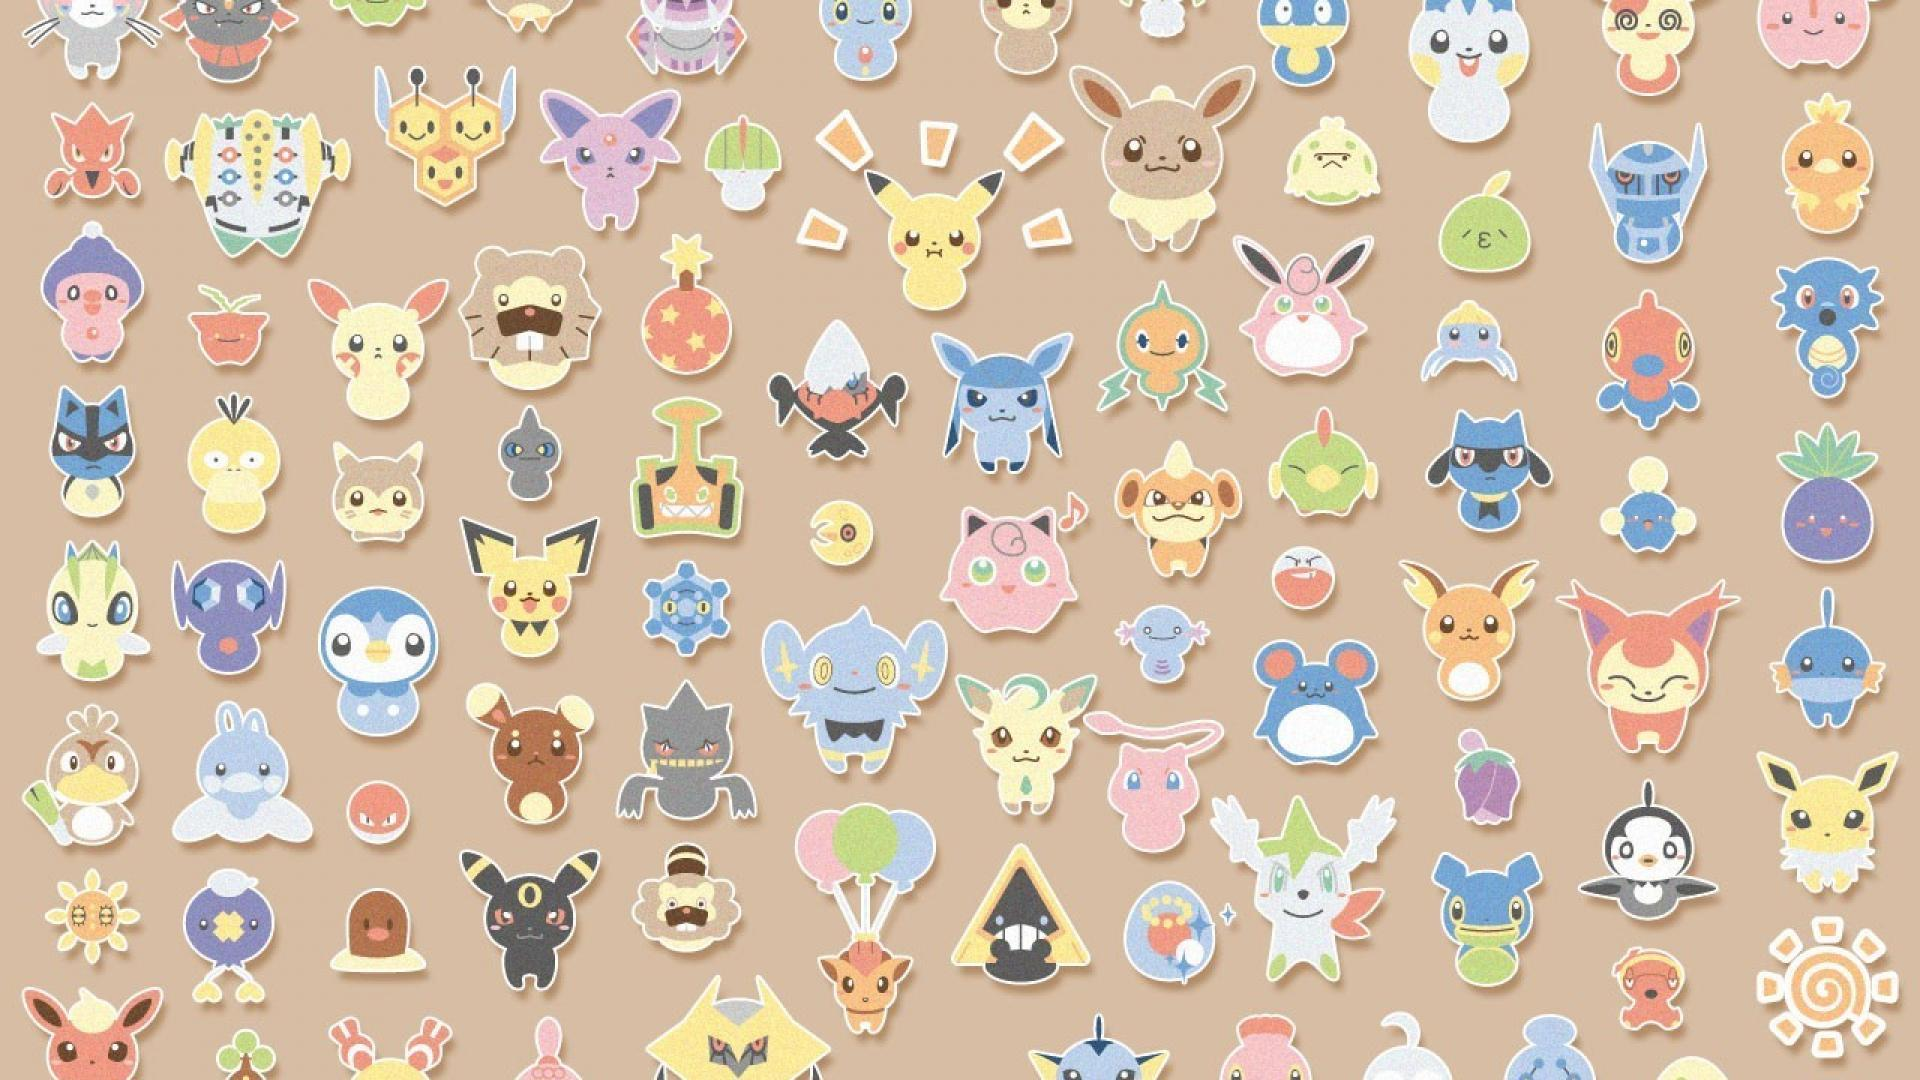 Castform riolu jirachi buneary pachirisu budew starly wallpapers